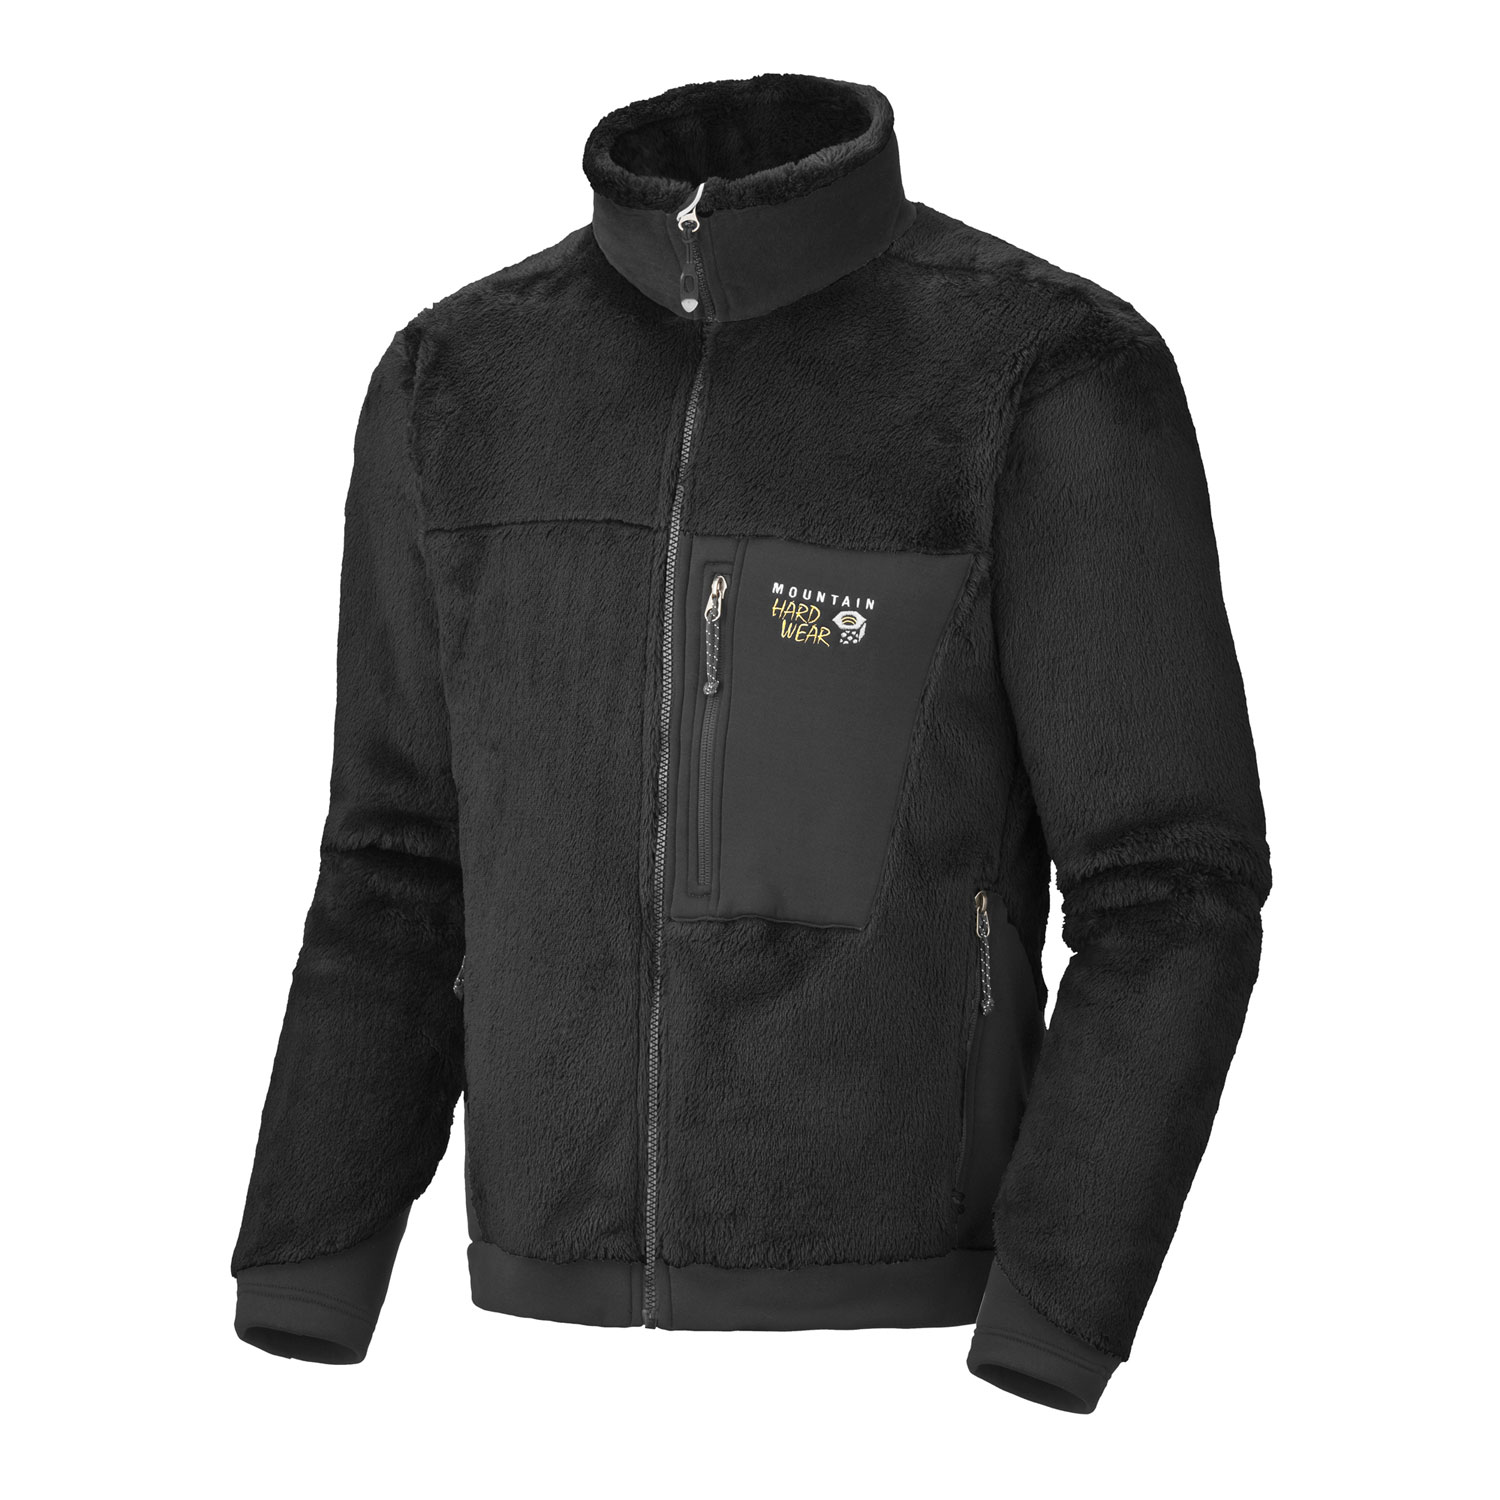 "Key Features of the Mountain Hardwear Monkey Man Fleece: Avg. weight: 1 lb 2 oz; 514g Center back length: 28"" Fabric: body: Polartec ThermalPro Monkey Phur (100% polyester) panel: Polartec Power Stretch (88% polyester, 12% Elastane) MicroClimate Zoning construction for built-in warmth, breathability and stretch Extremely soft, extremely warm Zip chest pocket to stash your stuff Zip handwarmer pockets - $119.95"